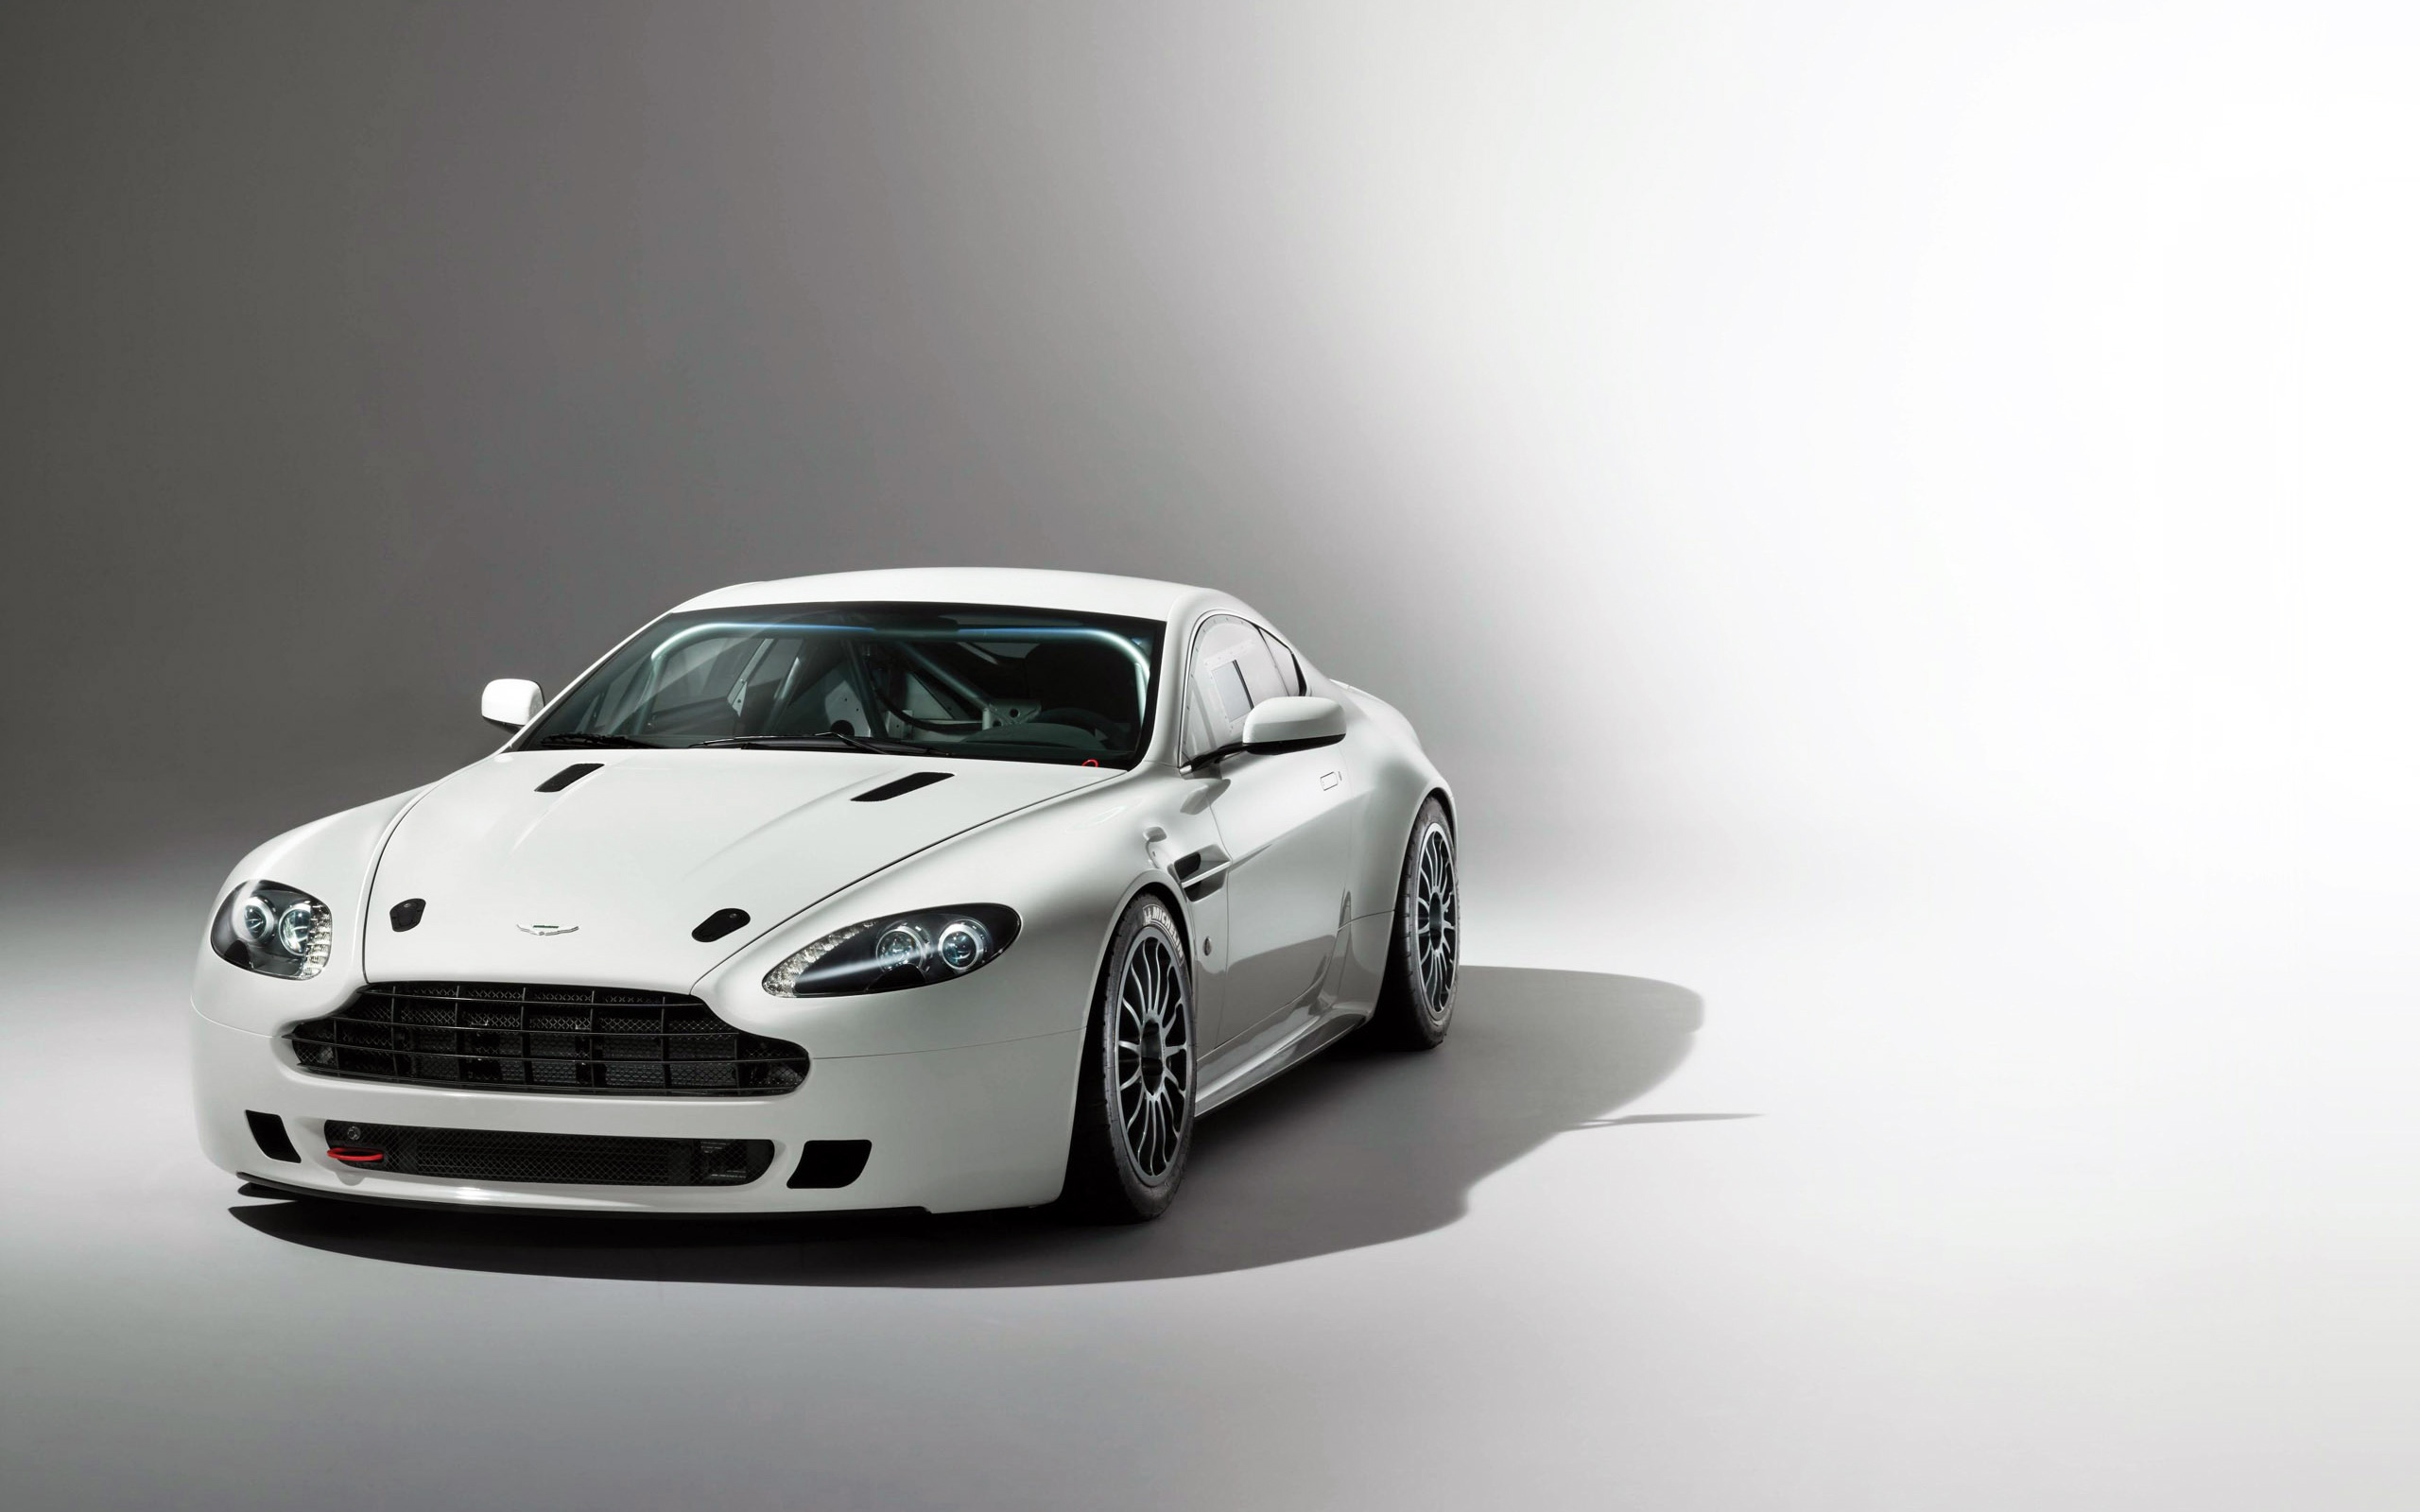 aston martin vantage gt4 front view wallpaper 47708